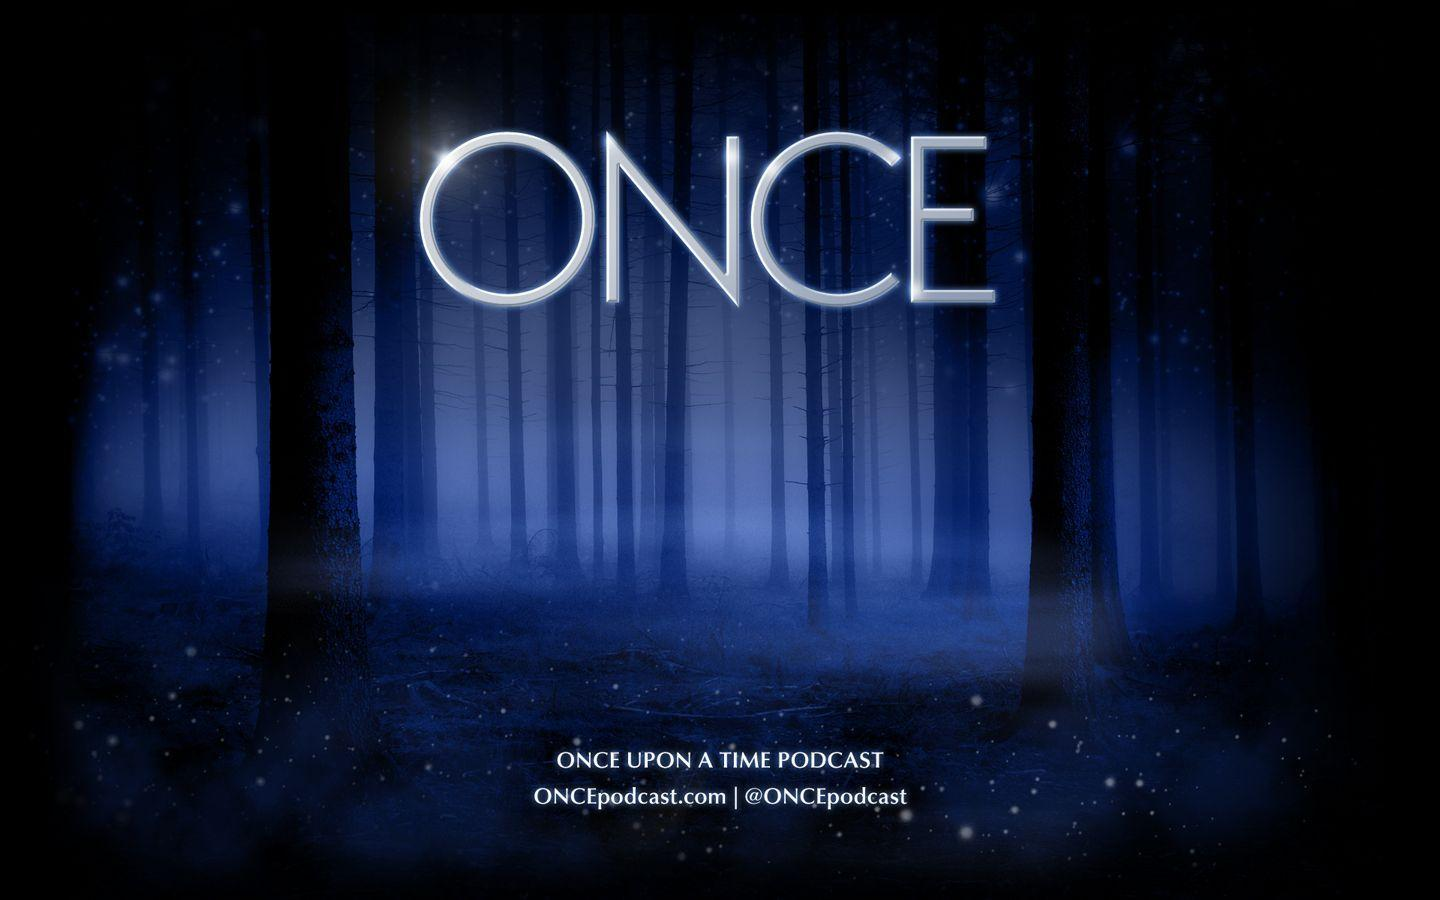 Free Once Upon a Time Podcast Desktop Wallpaper